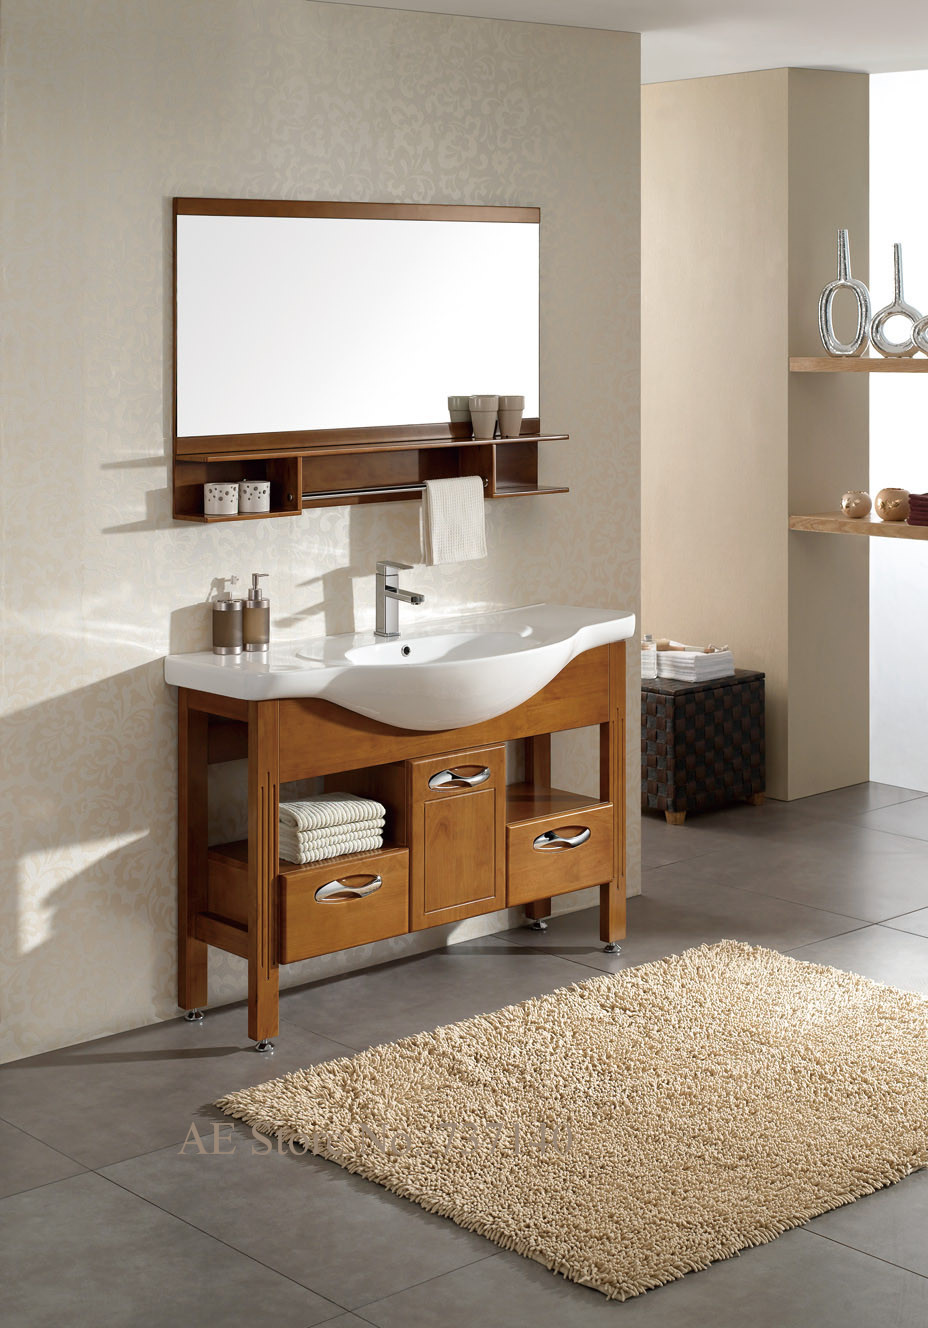 Compare Prices On High Bathroom Cabinets Online Shopping Buy Low